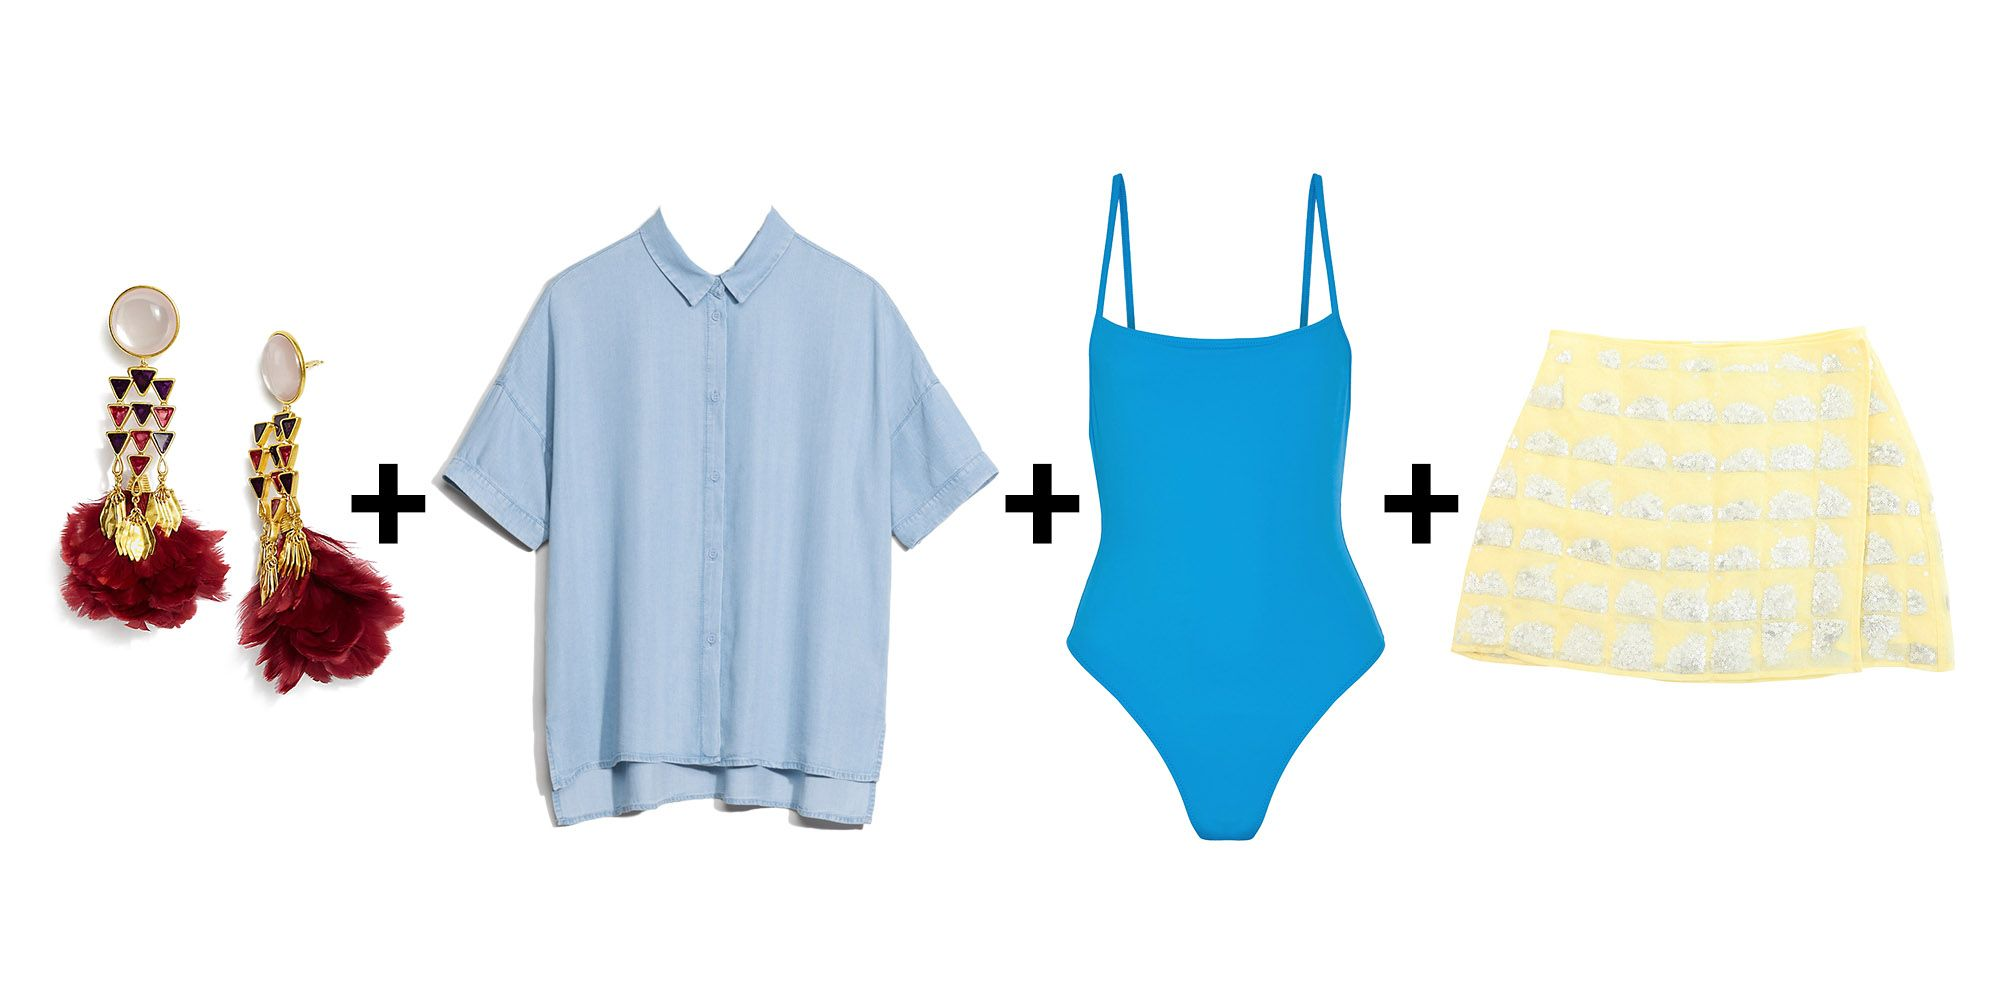 "<p>My personal favorite: Take your sun-dried swimsuit, add the skirt companion to <a href=""http://www.marieclaire.com/fashion/news/a23249/calle-del-mar-shirt-of-dreams/"" target=""_blank"" data-tracking-id=""recirc-text-link"">the most magical top ever made in the history of fashion</a>, and an open shirt for *propriety* (snickers). Oh, and fancy earrings never hurt anybody. </p><p><em data-redactor-tag=""em"" data-verified=""redactor"">Tory Burch earrings, $225, <a href=""https://www.toryburch.com/feather-chandelier-earring/34346.html?cgid=accessories-jewelry&dwvar_34346_color=611&start=16"" target=""_blank"" data-tracking-id=""recirc-text-link"">toryburch.com</a>; & Other Stories shirt, Solid & Striped swimsuit, $158, <a href=""https://www.net-a-porter.com/us/en/product/839726/solid_and_striped/the-chelsea-swimsuit"" target=""_blank"" data-tracking-id=""recirc-text-link"">net-a-porter.com</a>; Calle del Mar skirt, $310, <a href=""https://www.calledelmar.us/shop/sequin-wrap-skirt-sunshine"" target=""_blank"" data-tracking-id=""recirc-text-link"">calledelmar.us</a>. </em></p>"